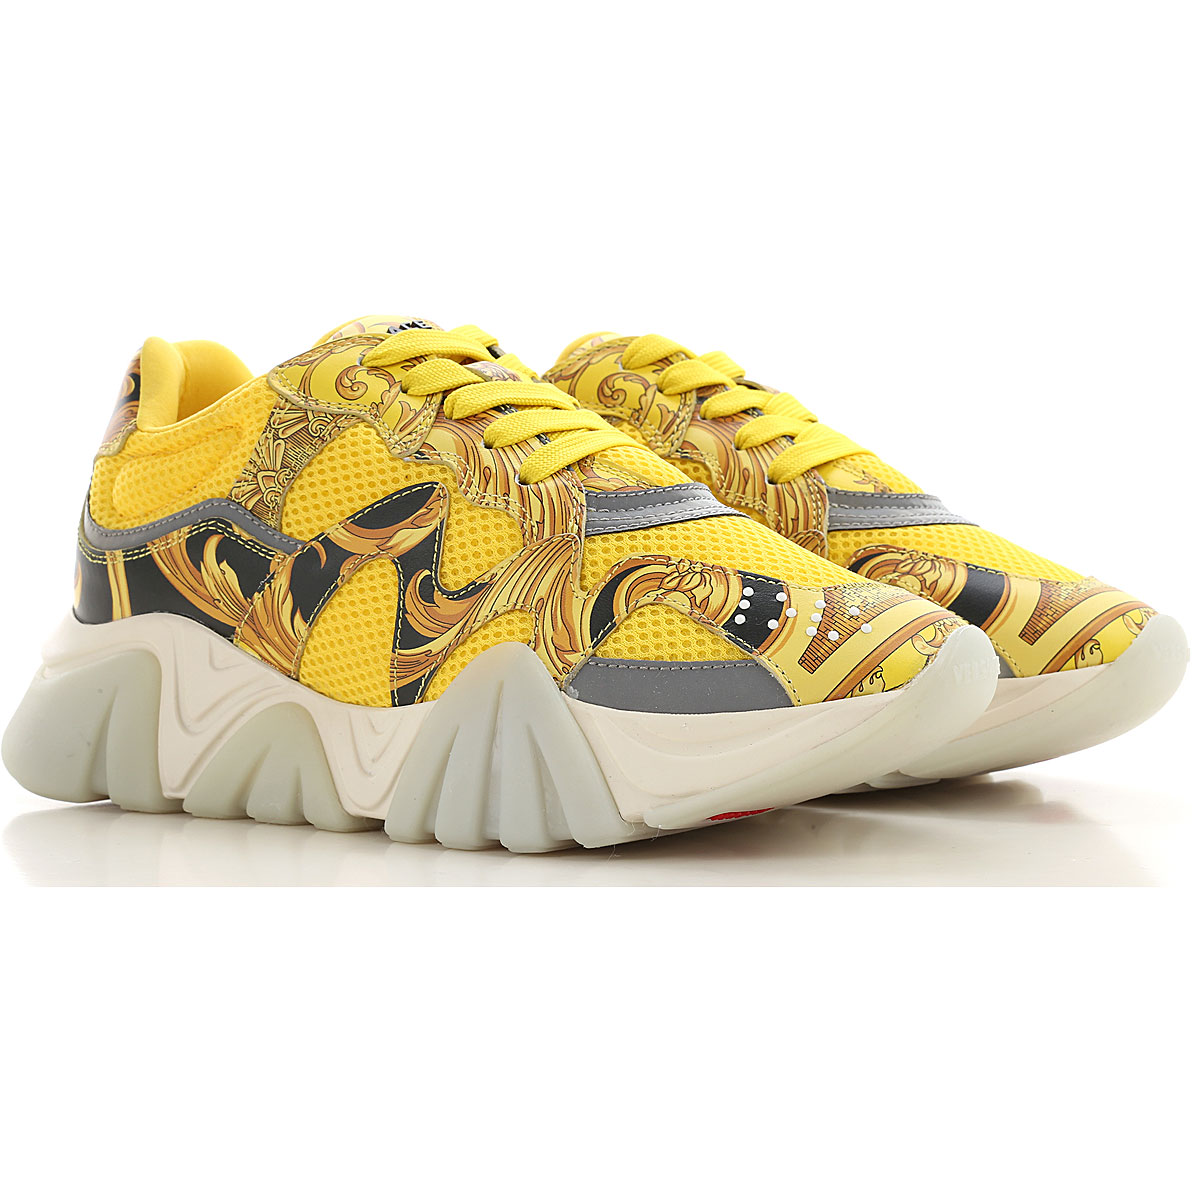 Gianni Versace Sneakers for Women On Sale, Yellow, Leather, 2019, 10 5.5 6 6.5 7 8 8.5 9 9.5